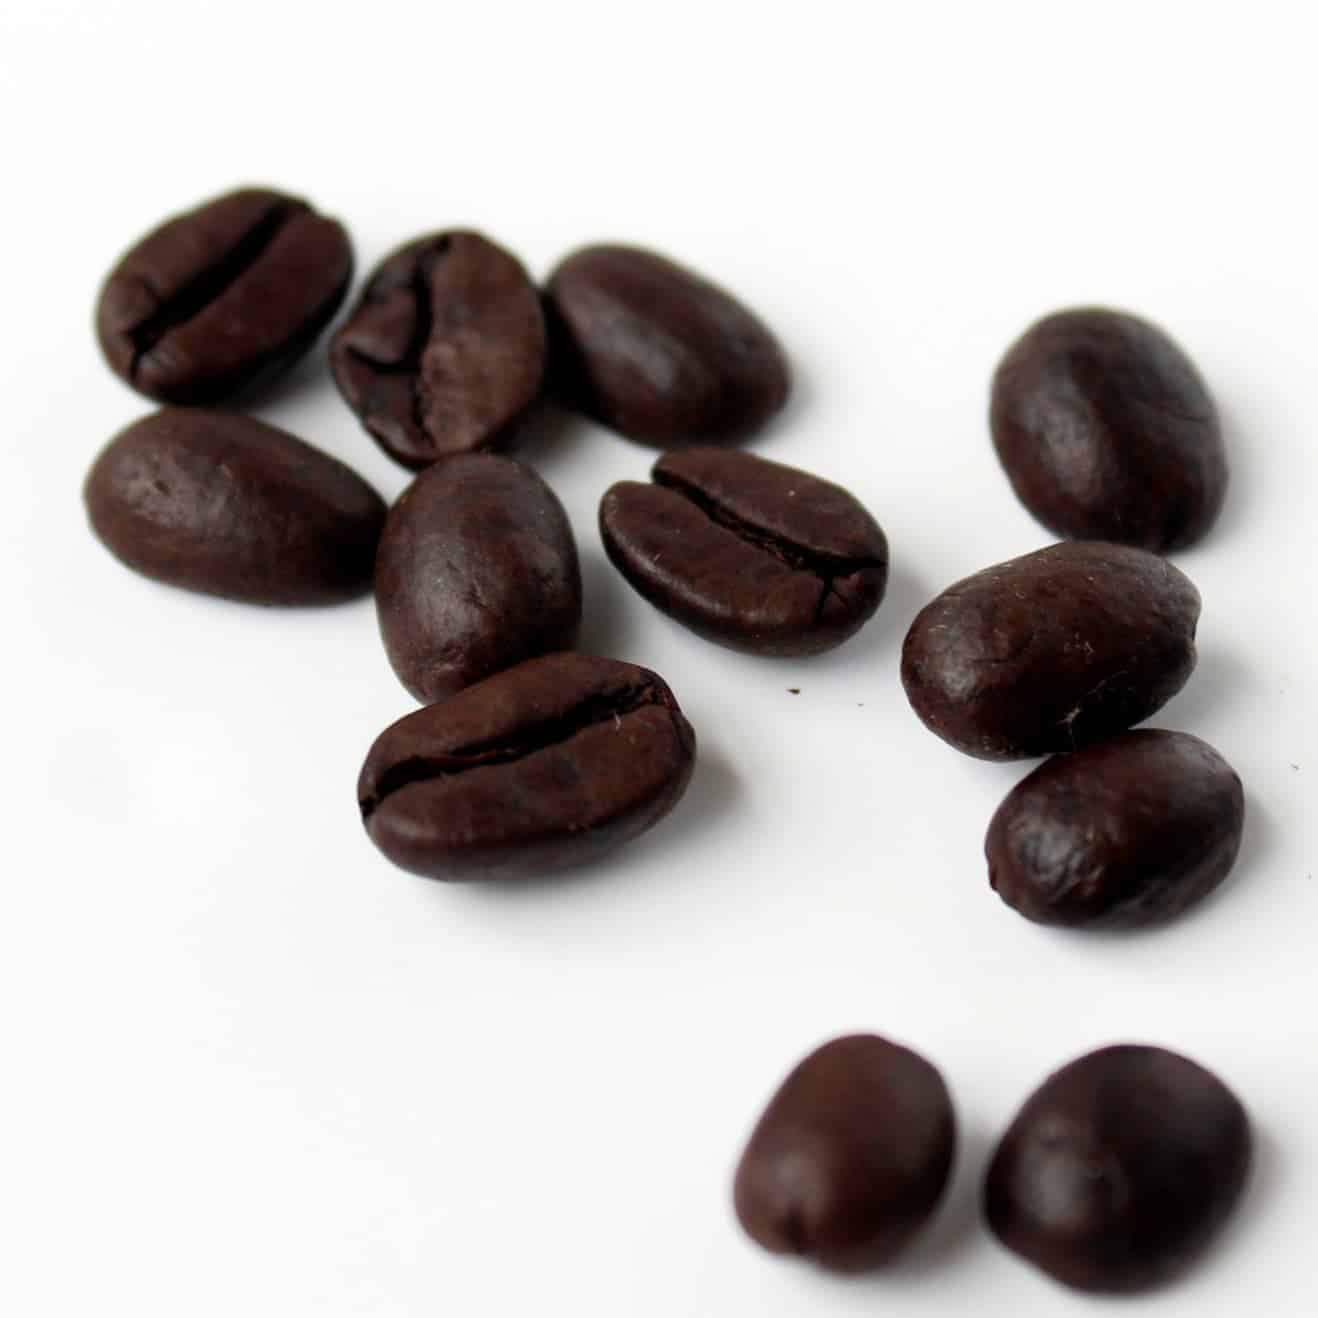 Are Coffee Beans Better In Dark Or Milk Chocolate